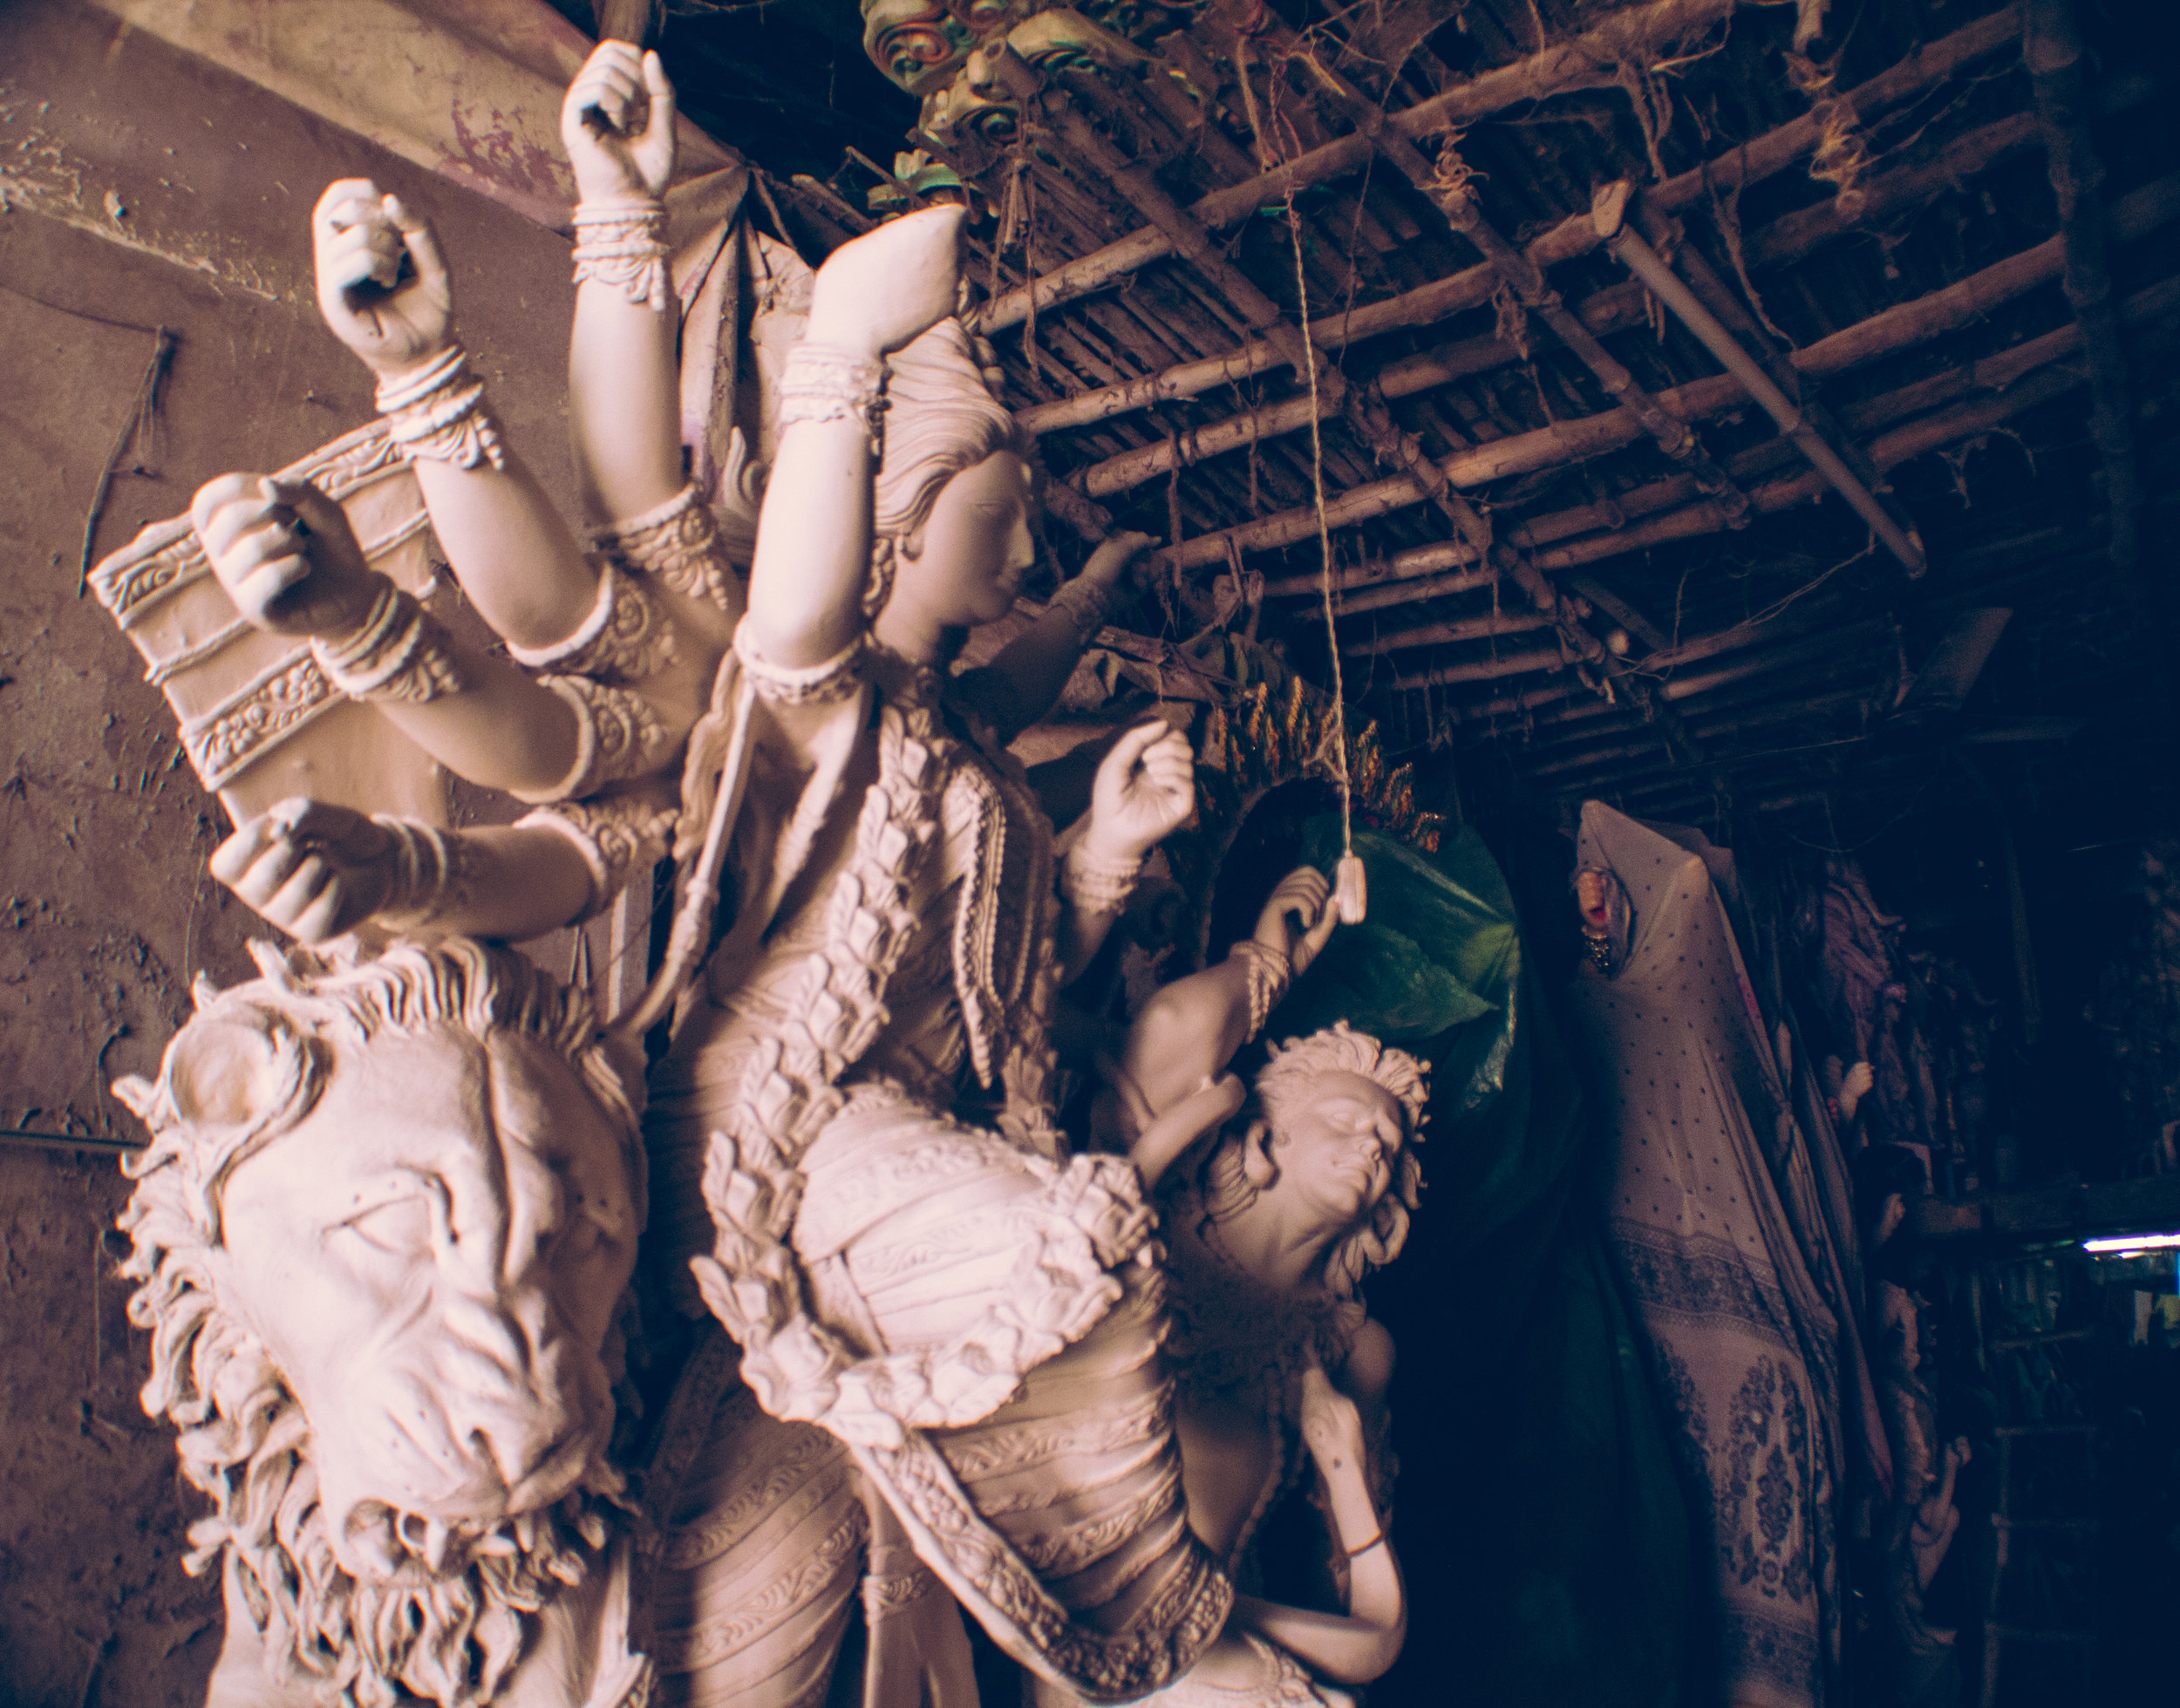 A partially finished sculpture awaits her finishing touches inside an artist's warehouse in Kumartuli, days before the start of the festival.